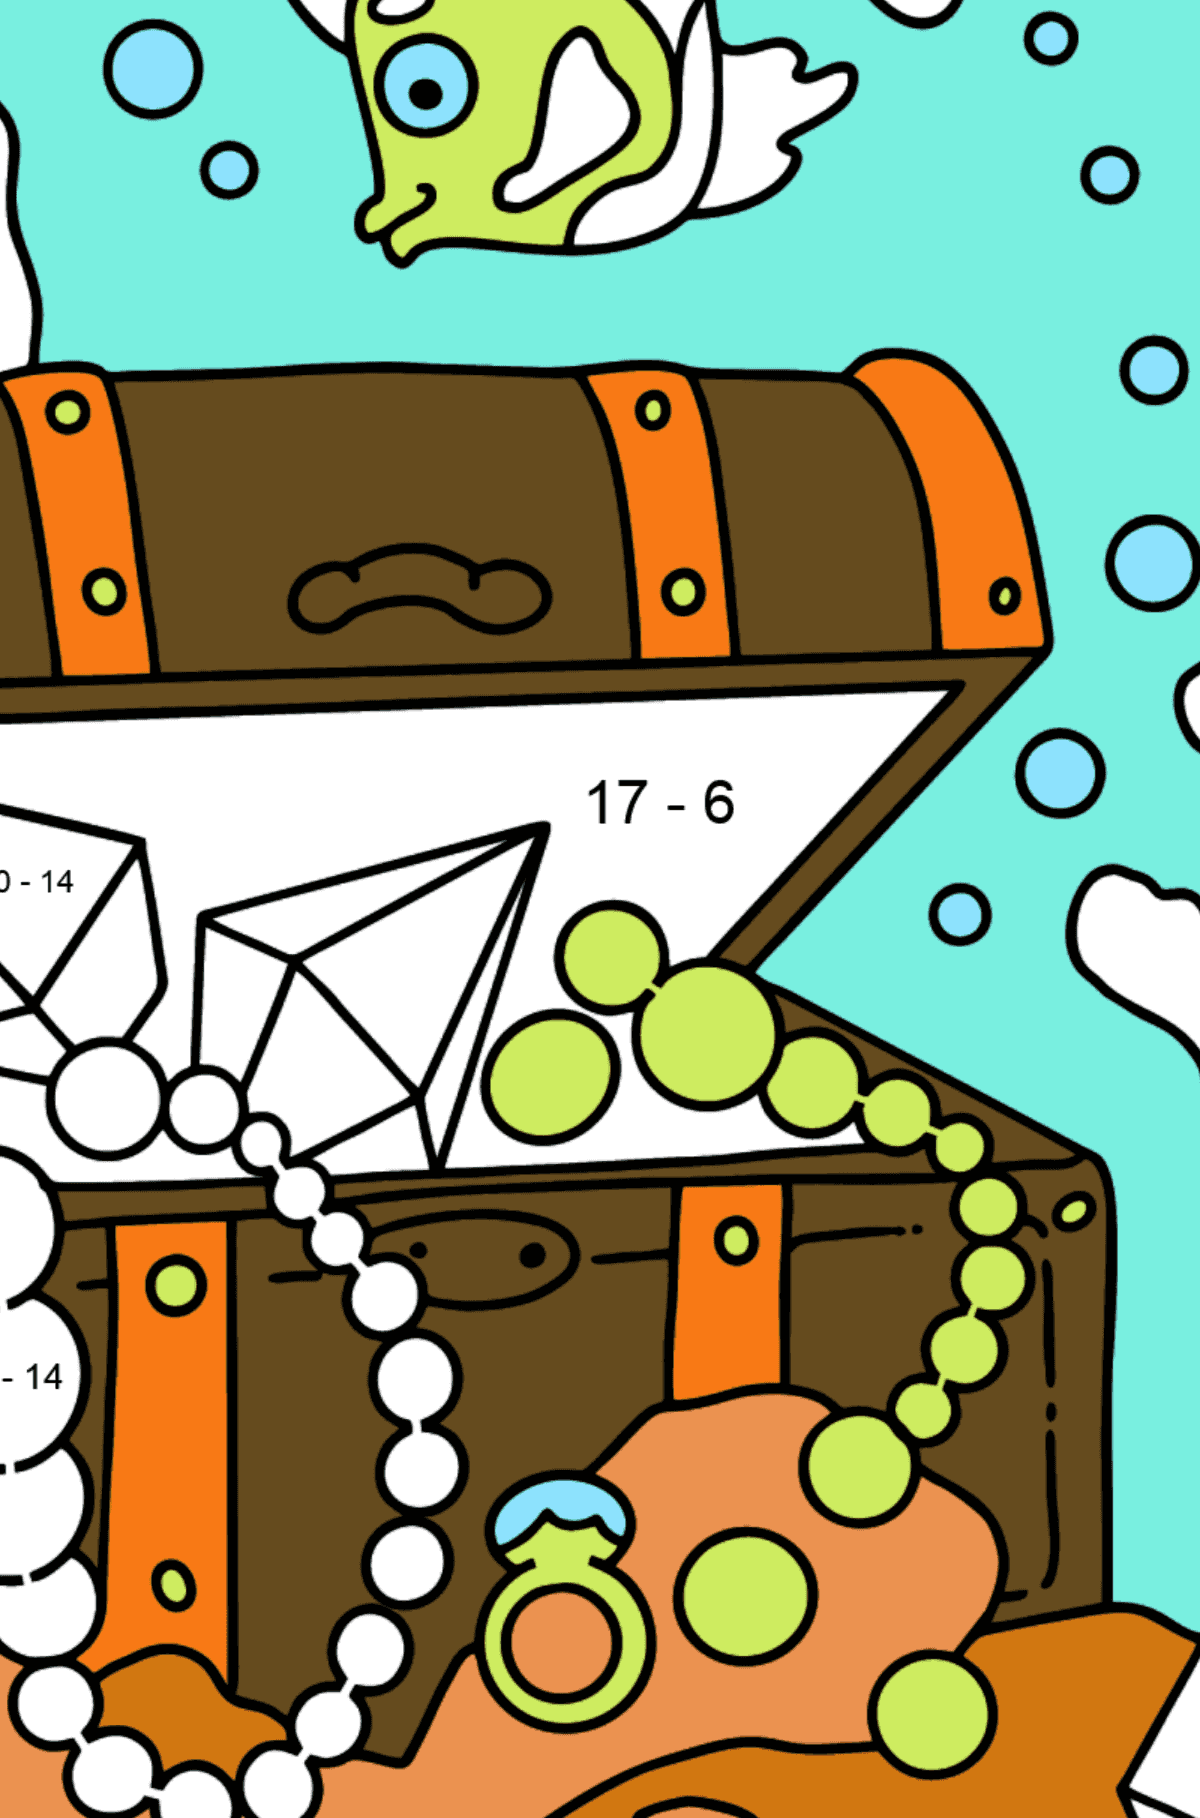 Coloring Page - A Fish is Swimming Around a Pirate's Chest - Math Coloring - Subtraction for Kids